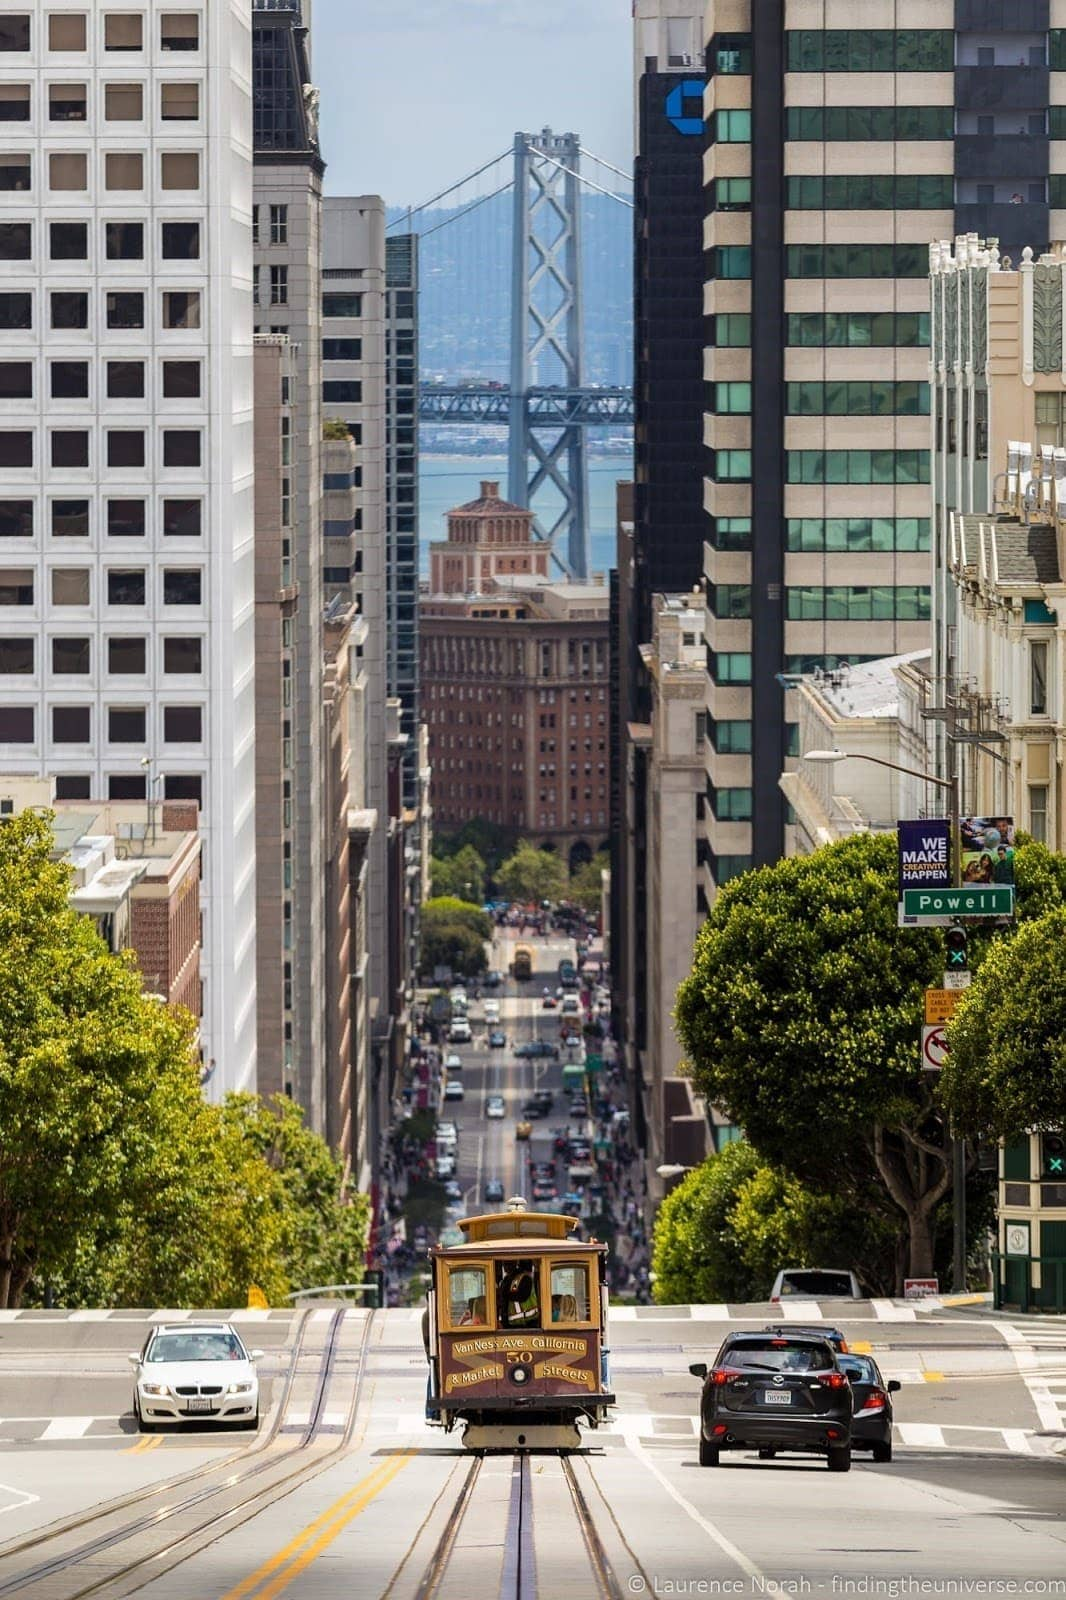 Tram in San Francisco streets